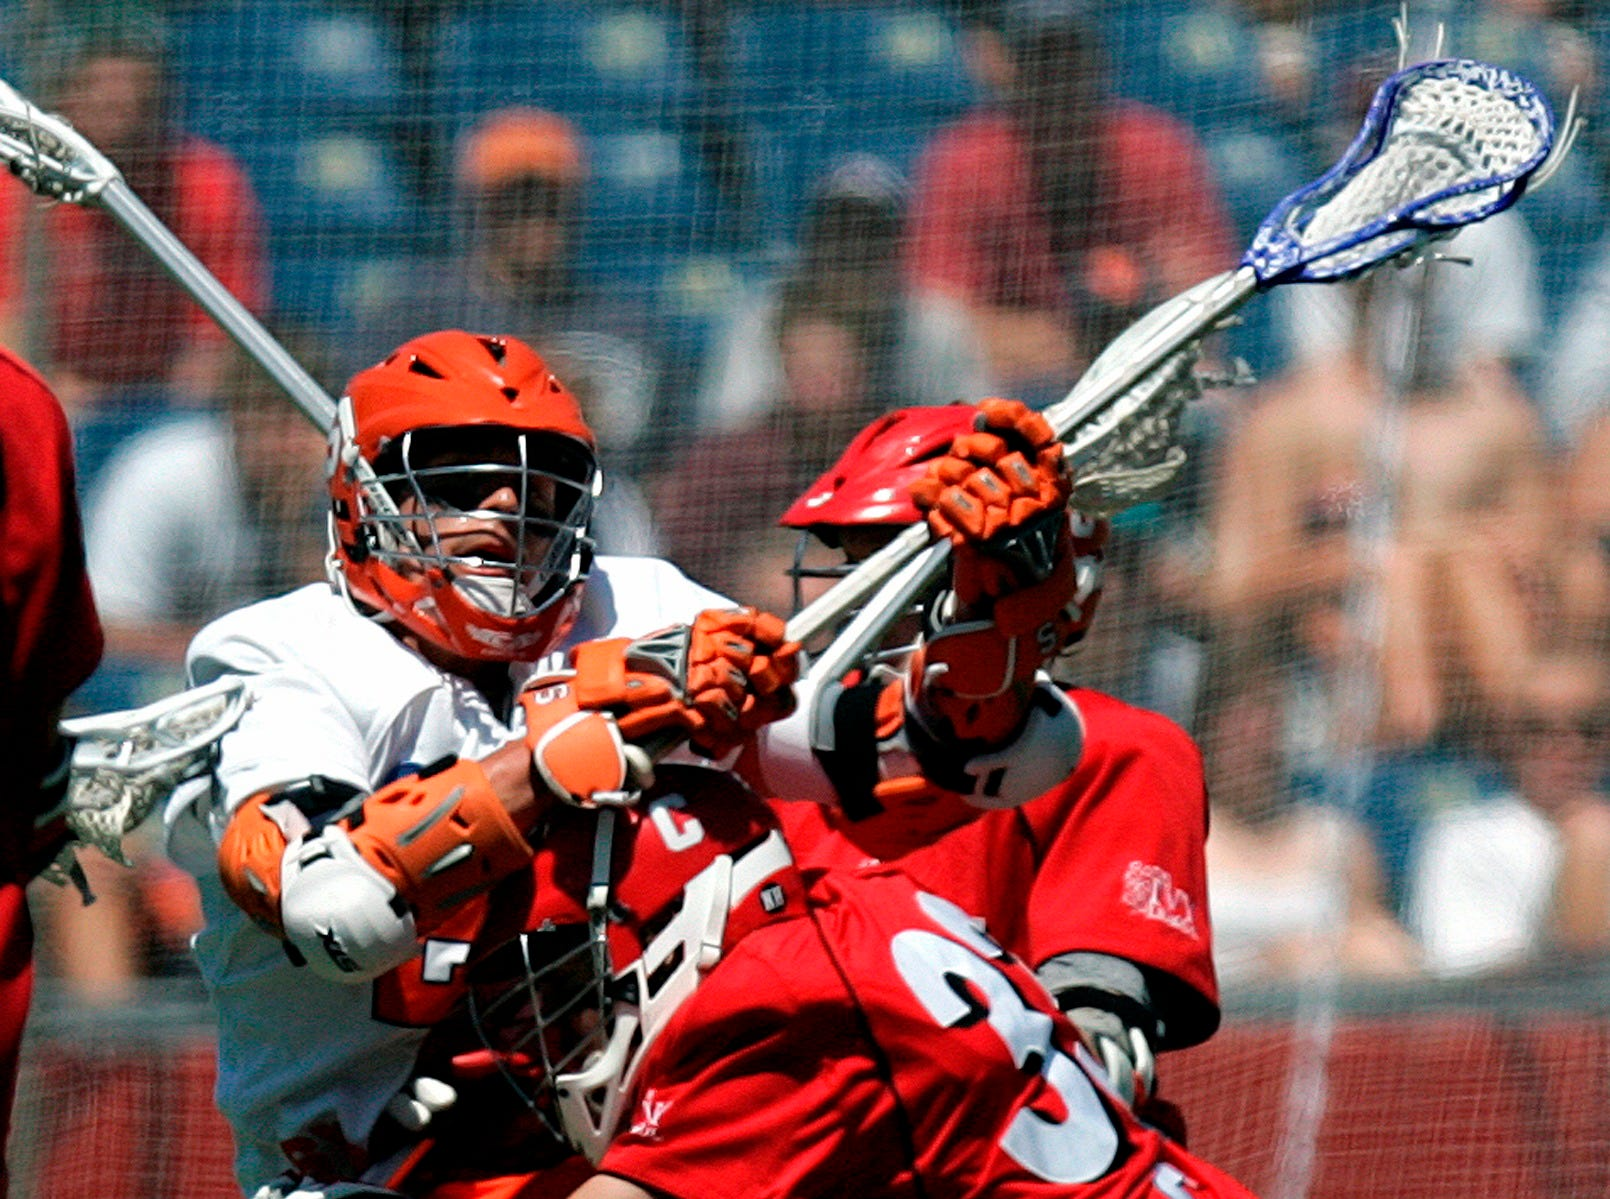 Cornell's Max Feely, center, checks Syracuse's Tim Desko, left, in the second quarter of an NCAA Division 1 Men's lacrosse championship game in Foxborough, Mass., Monday, May 25, 2009.